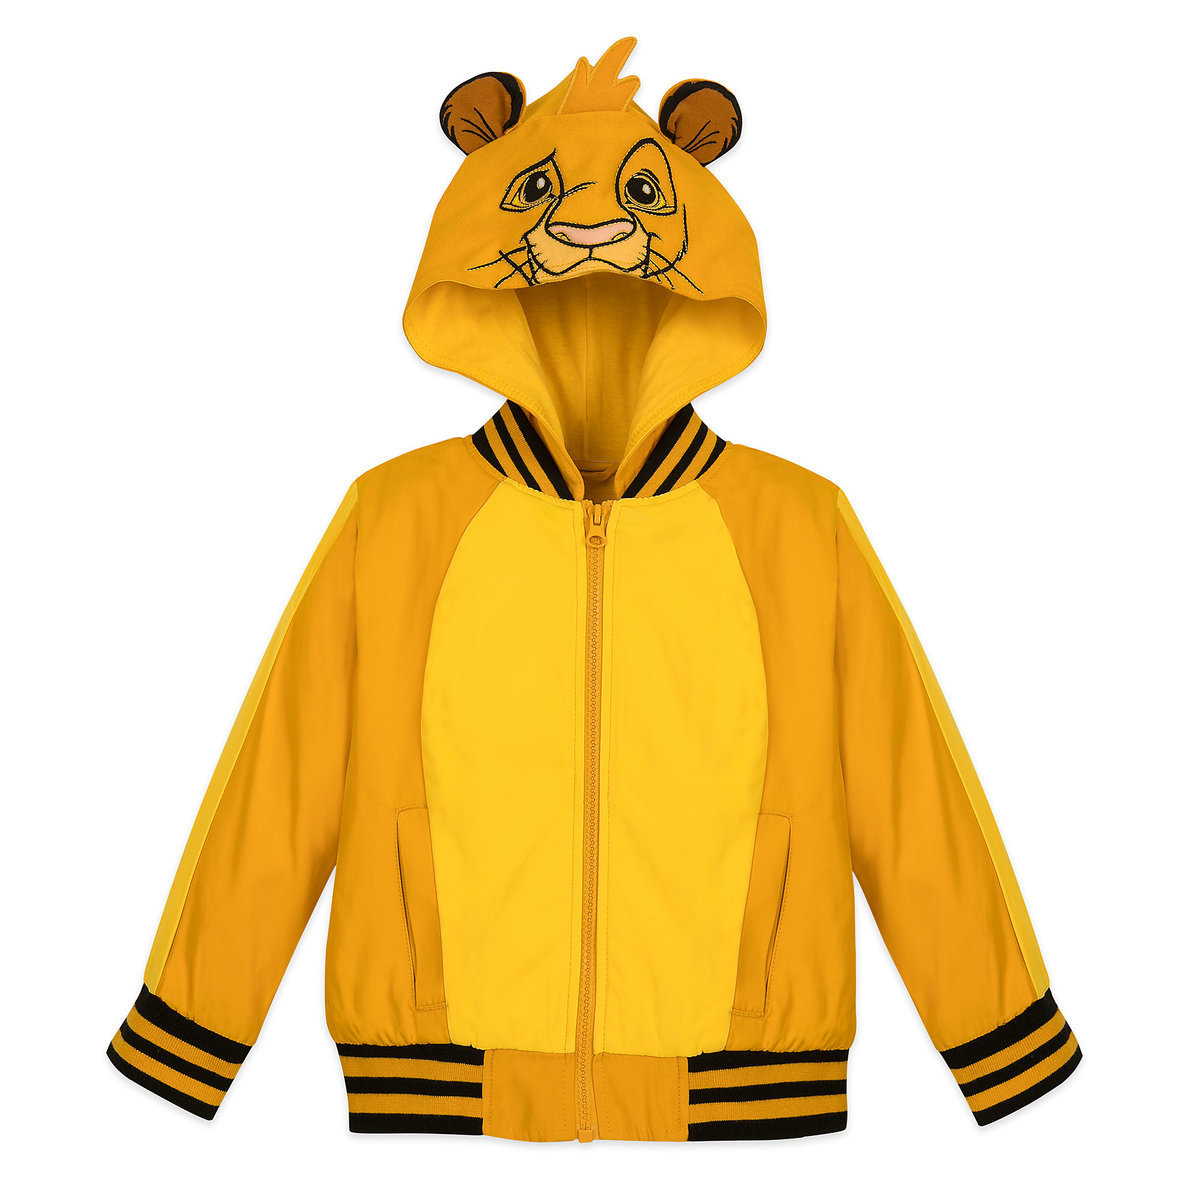 Simba Hooded Jacket for Boys | Top 25 Disney Gift Ideas for Toddlers featured by top US Disney blogger, Marcie and the Mouse